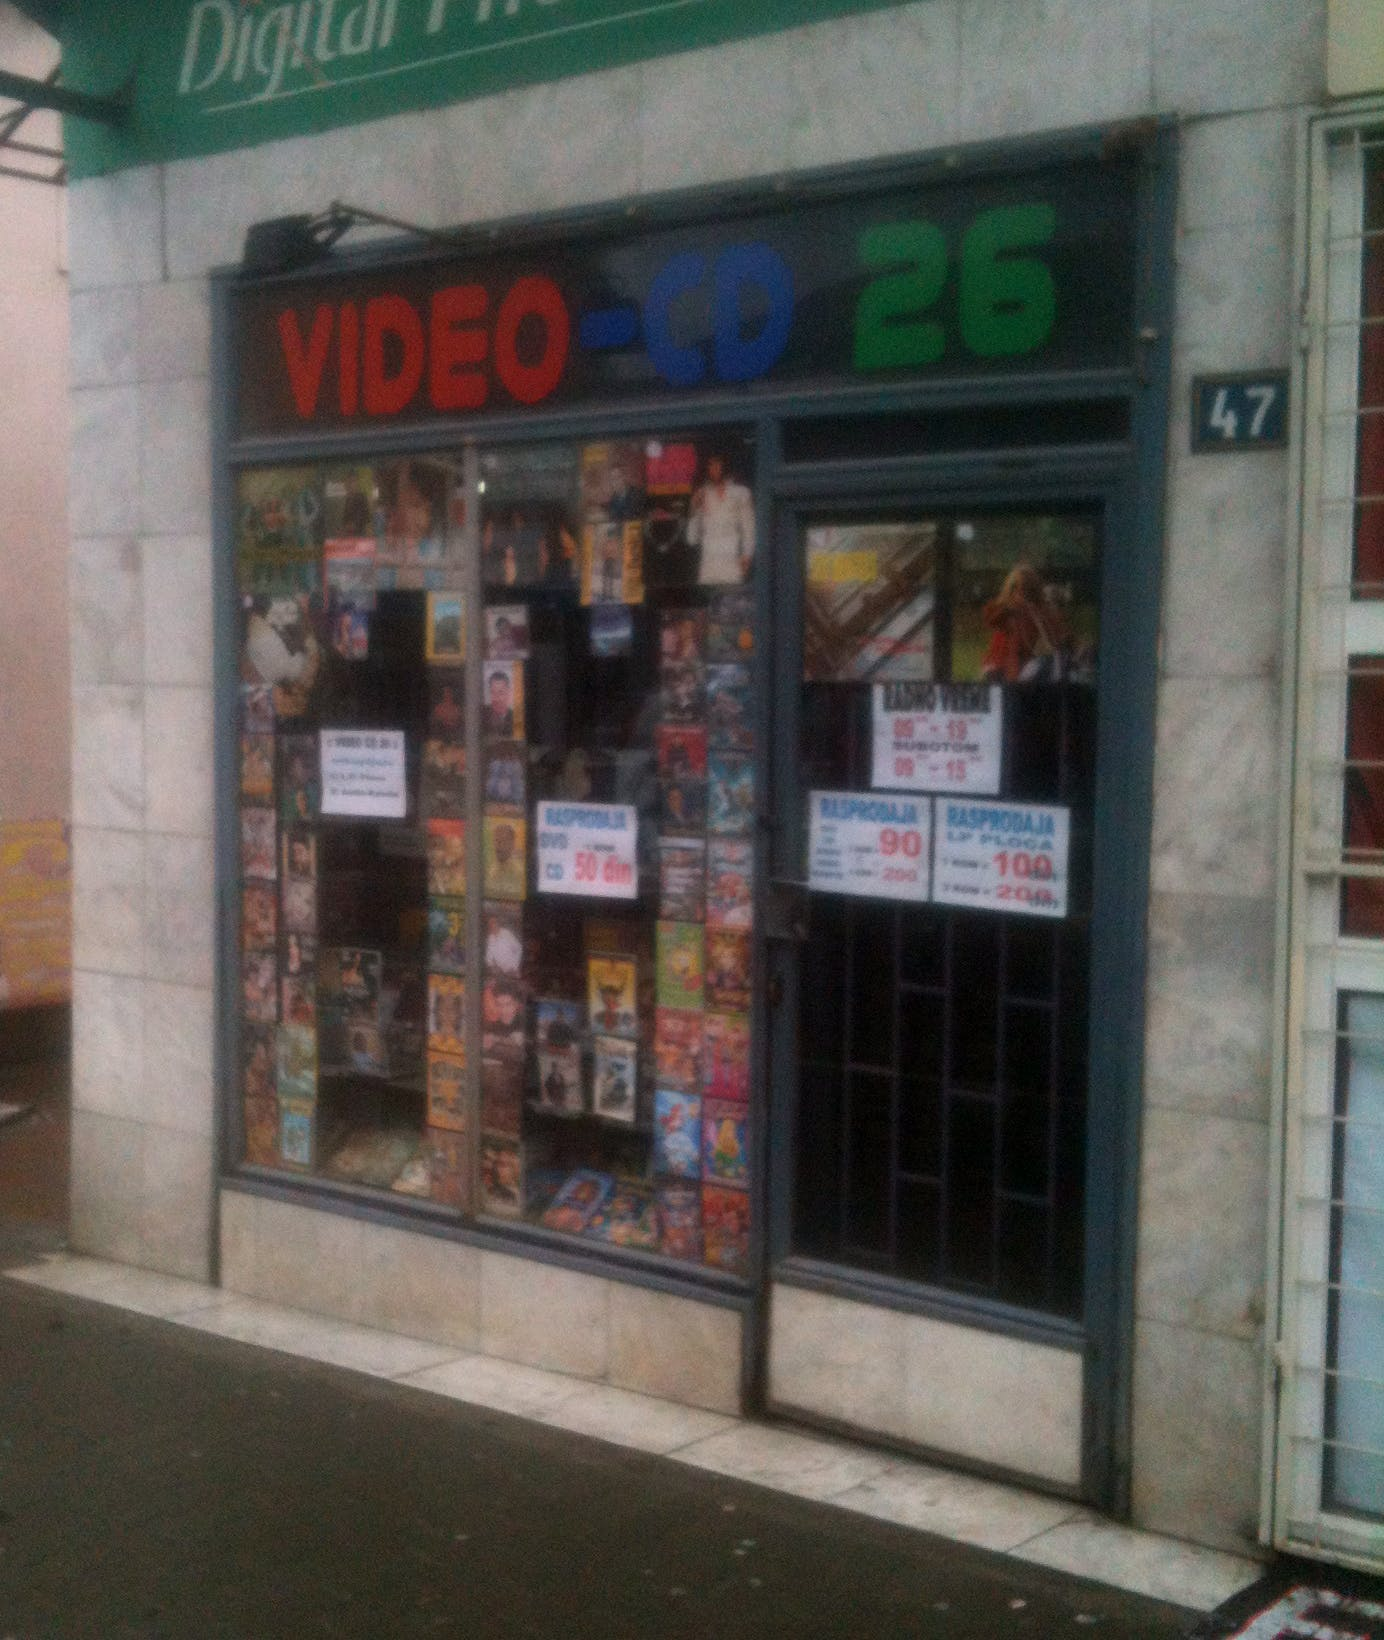 Video-CD 26 - Record Store Image